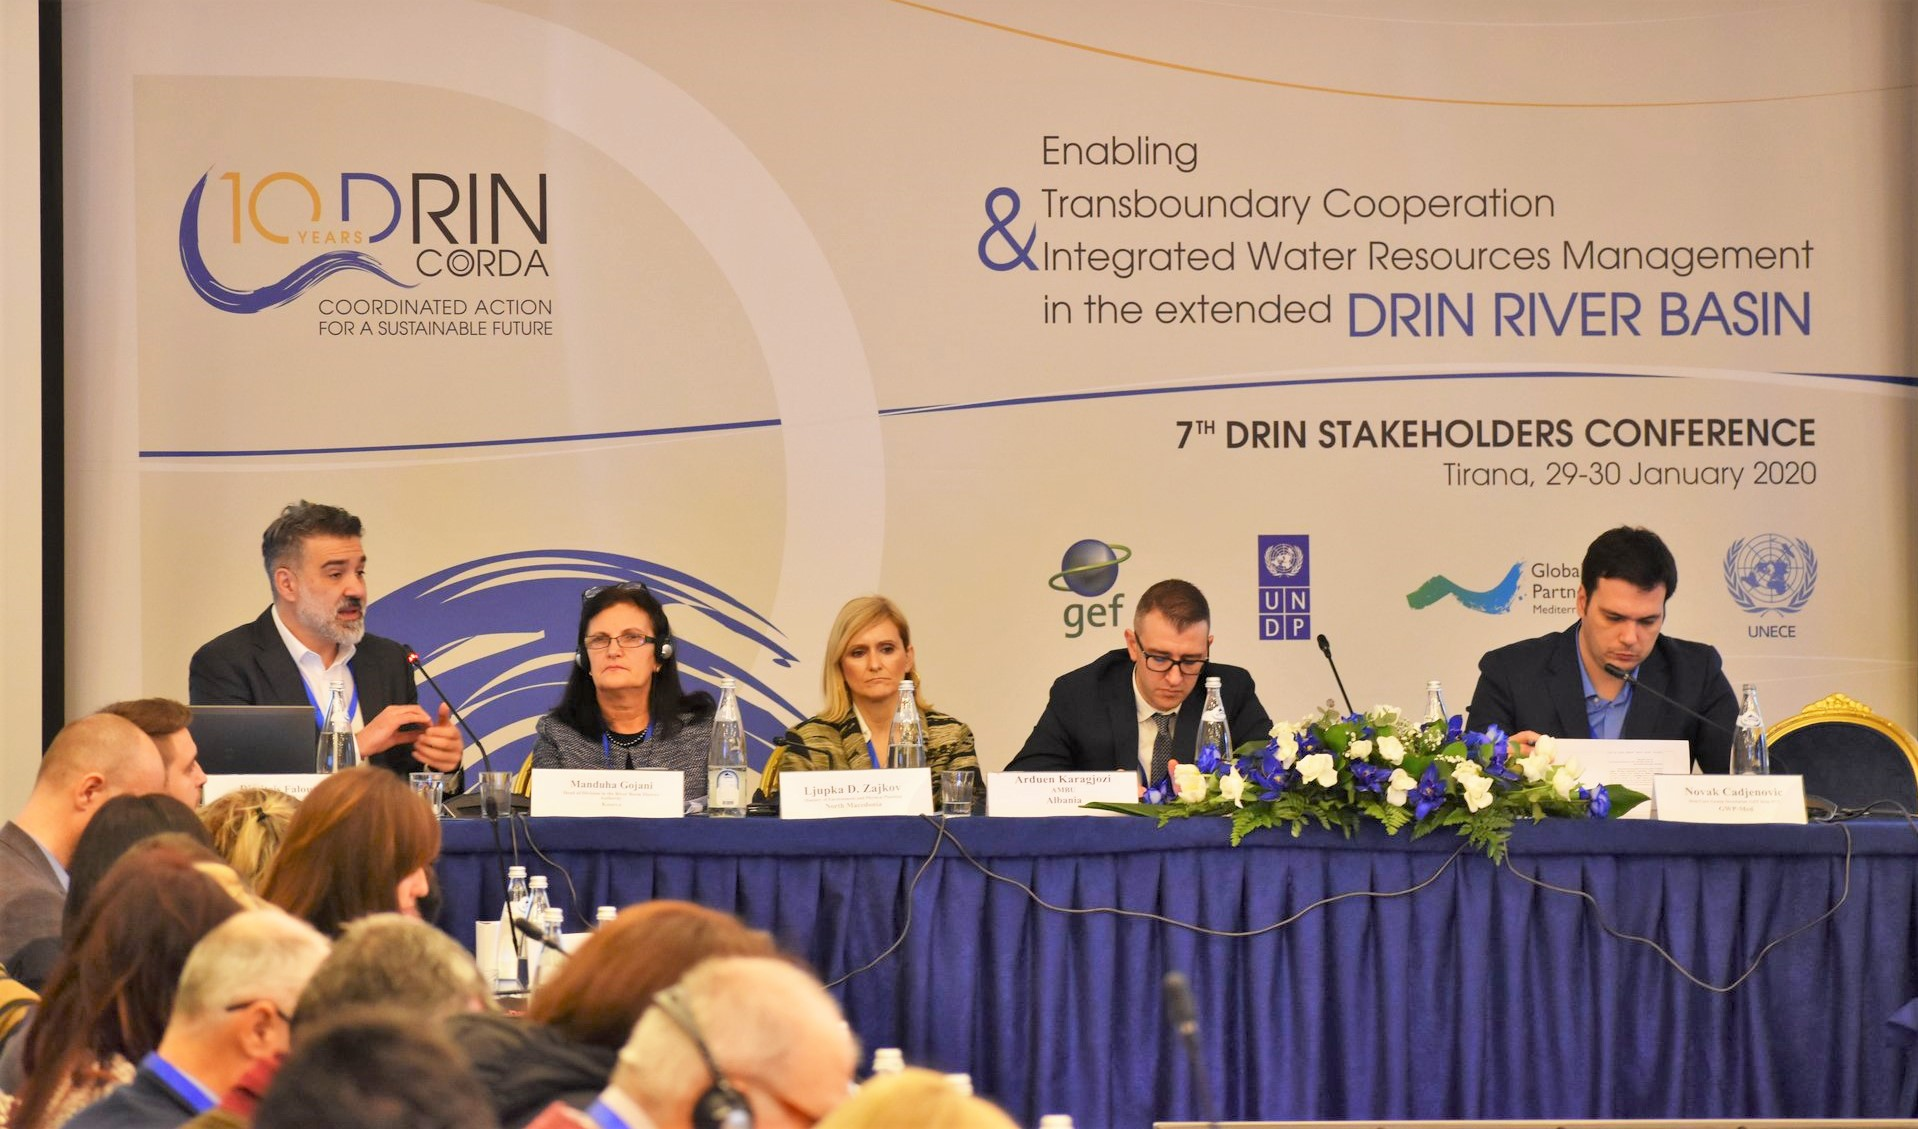 Celebrating 10 years of Drin collaboration: stakeholders discuss drought management in the Drin Basin